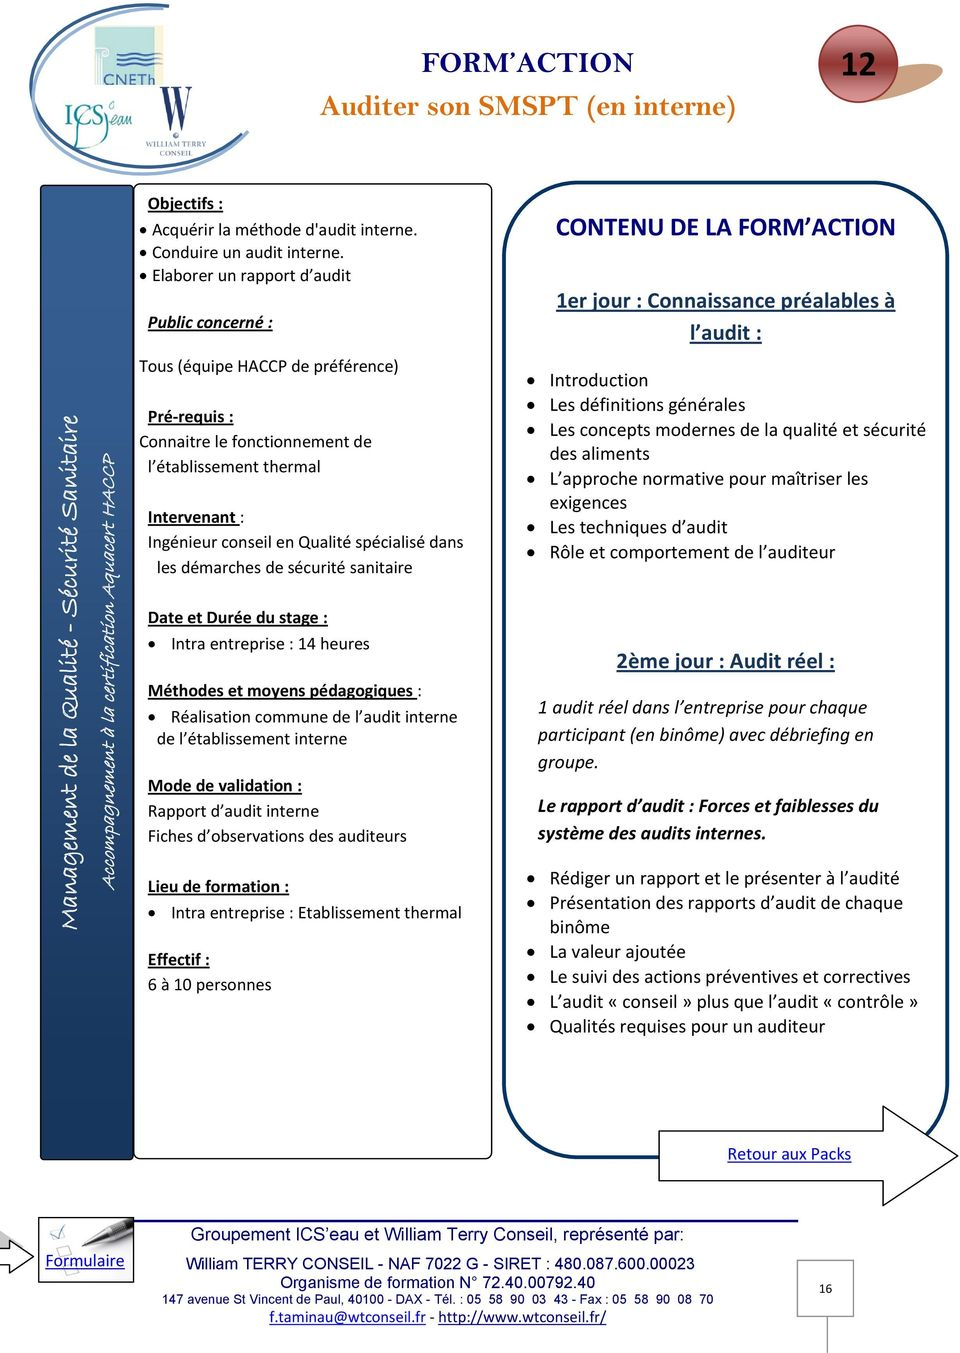 démarches de sécurité sanitaire Intra entreprise : 14 heures Réalisation commune de l audit interne de l établissement interne Rapport d audit interne Fiches d observations des auditeurs Intra